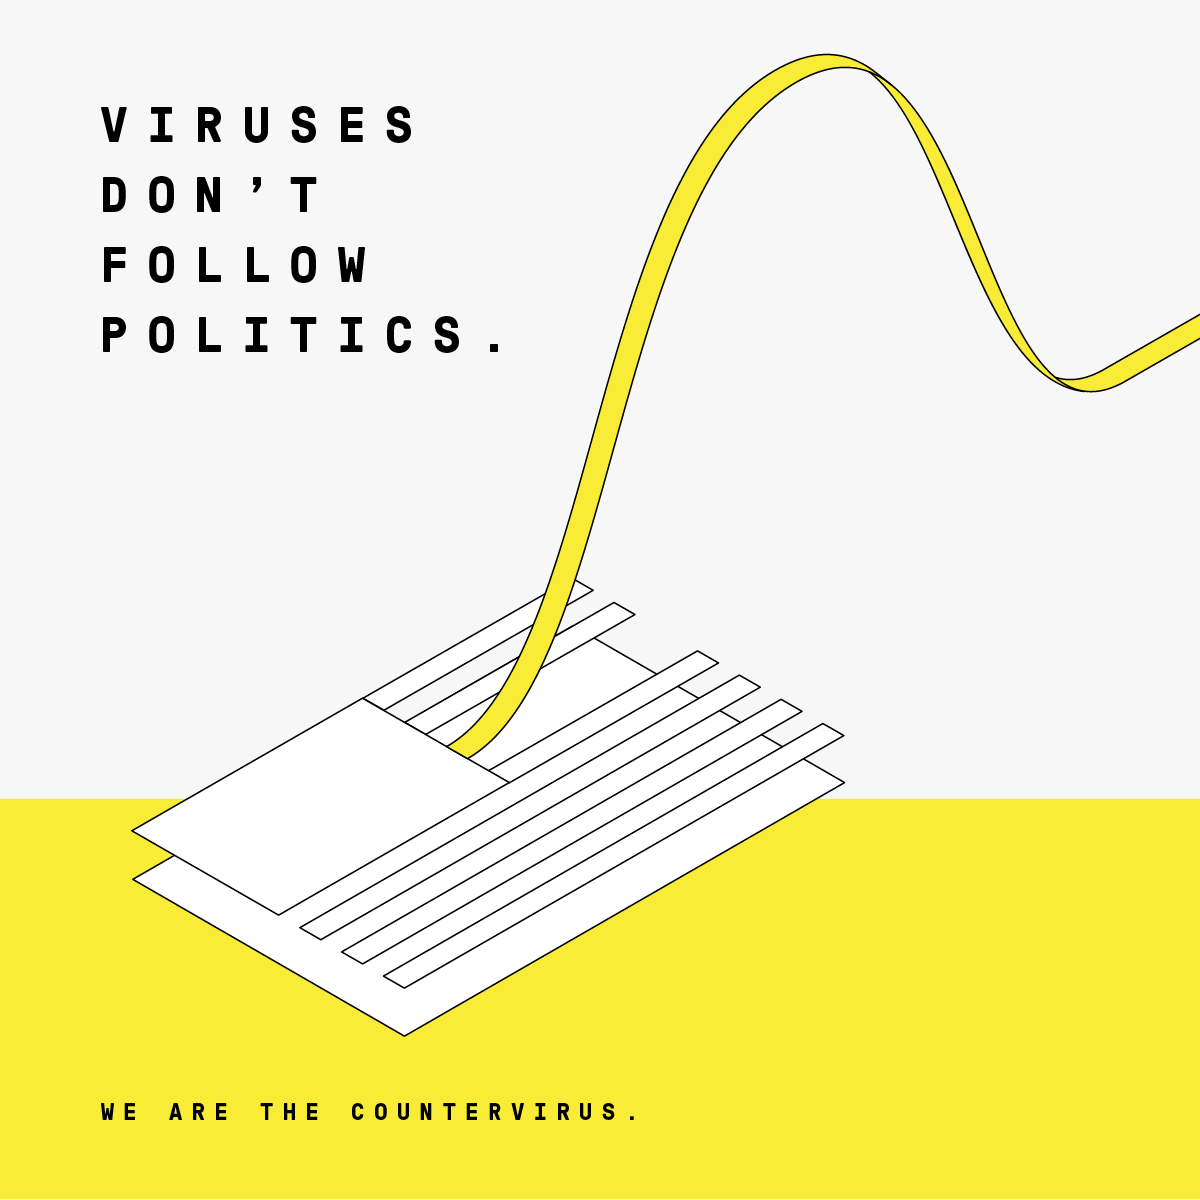 RyanKurz_Front-Page_viruses-dont-follow-politics_v3